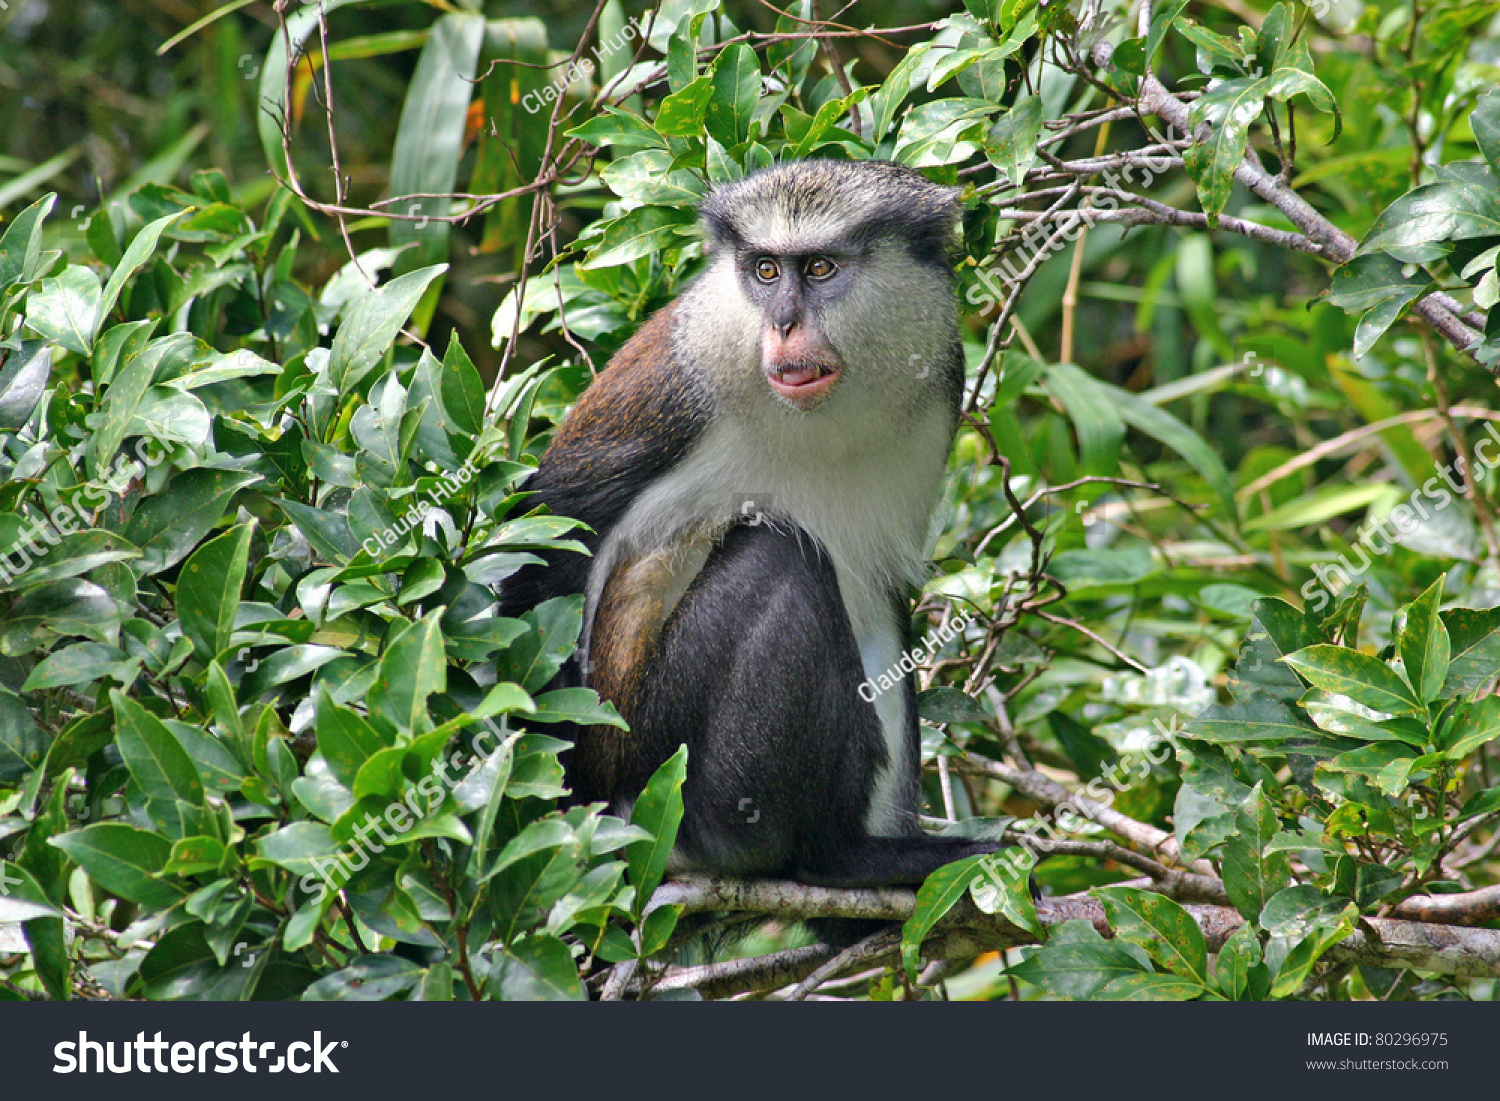 Mona monkey (Cercopithecus mona) on the island of Grenada